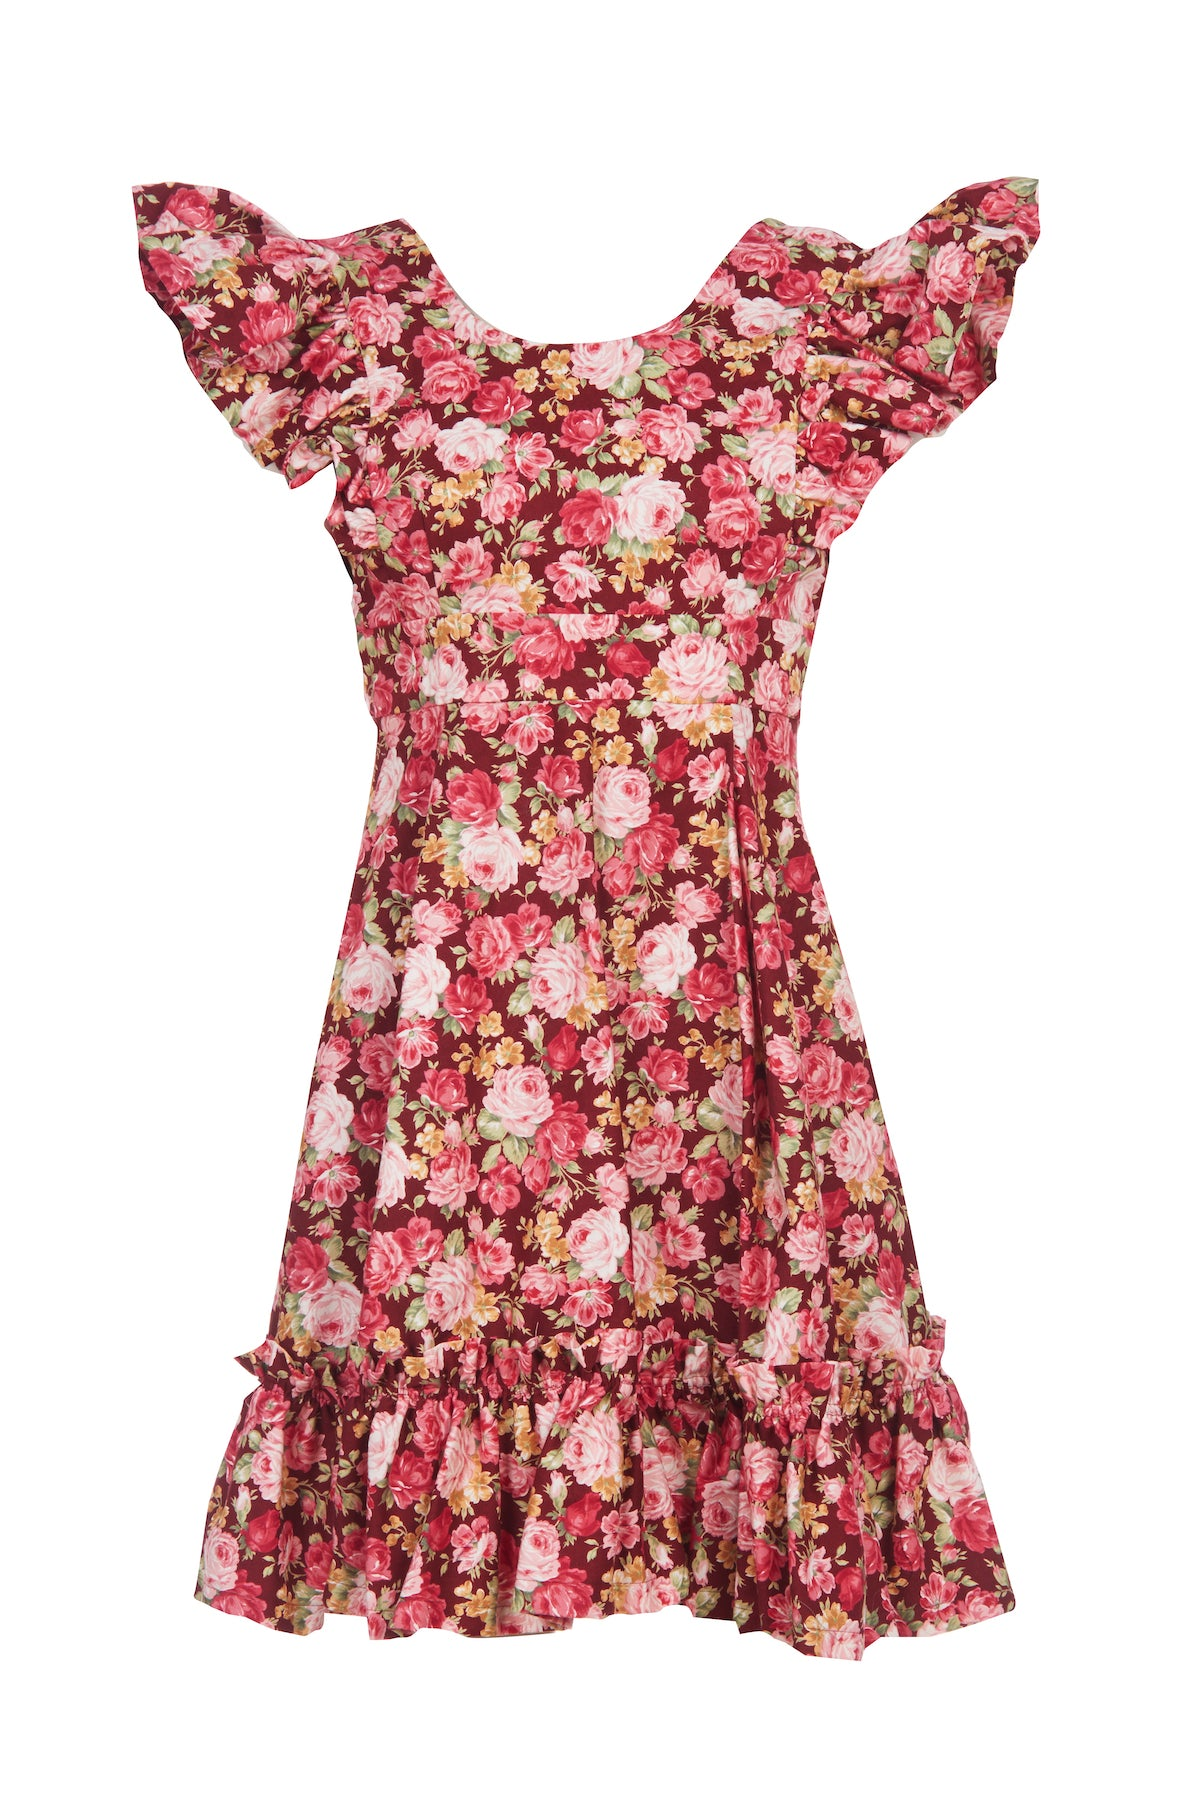 Red Rose Cotton Quinoa Dress